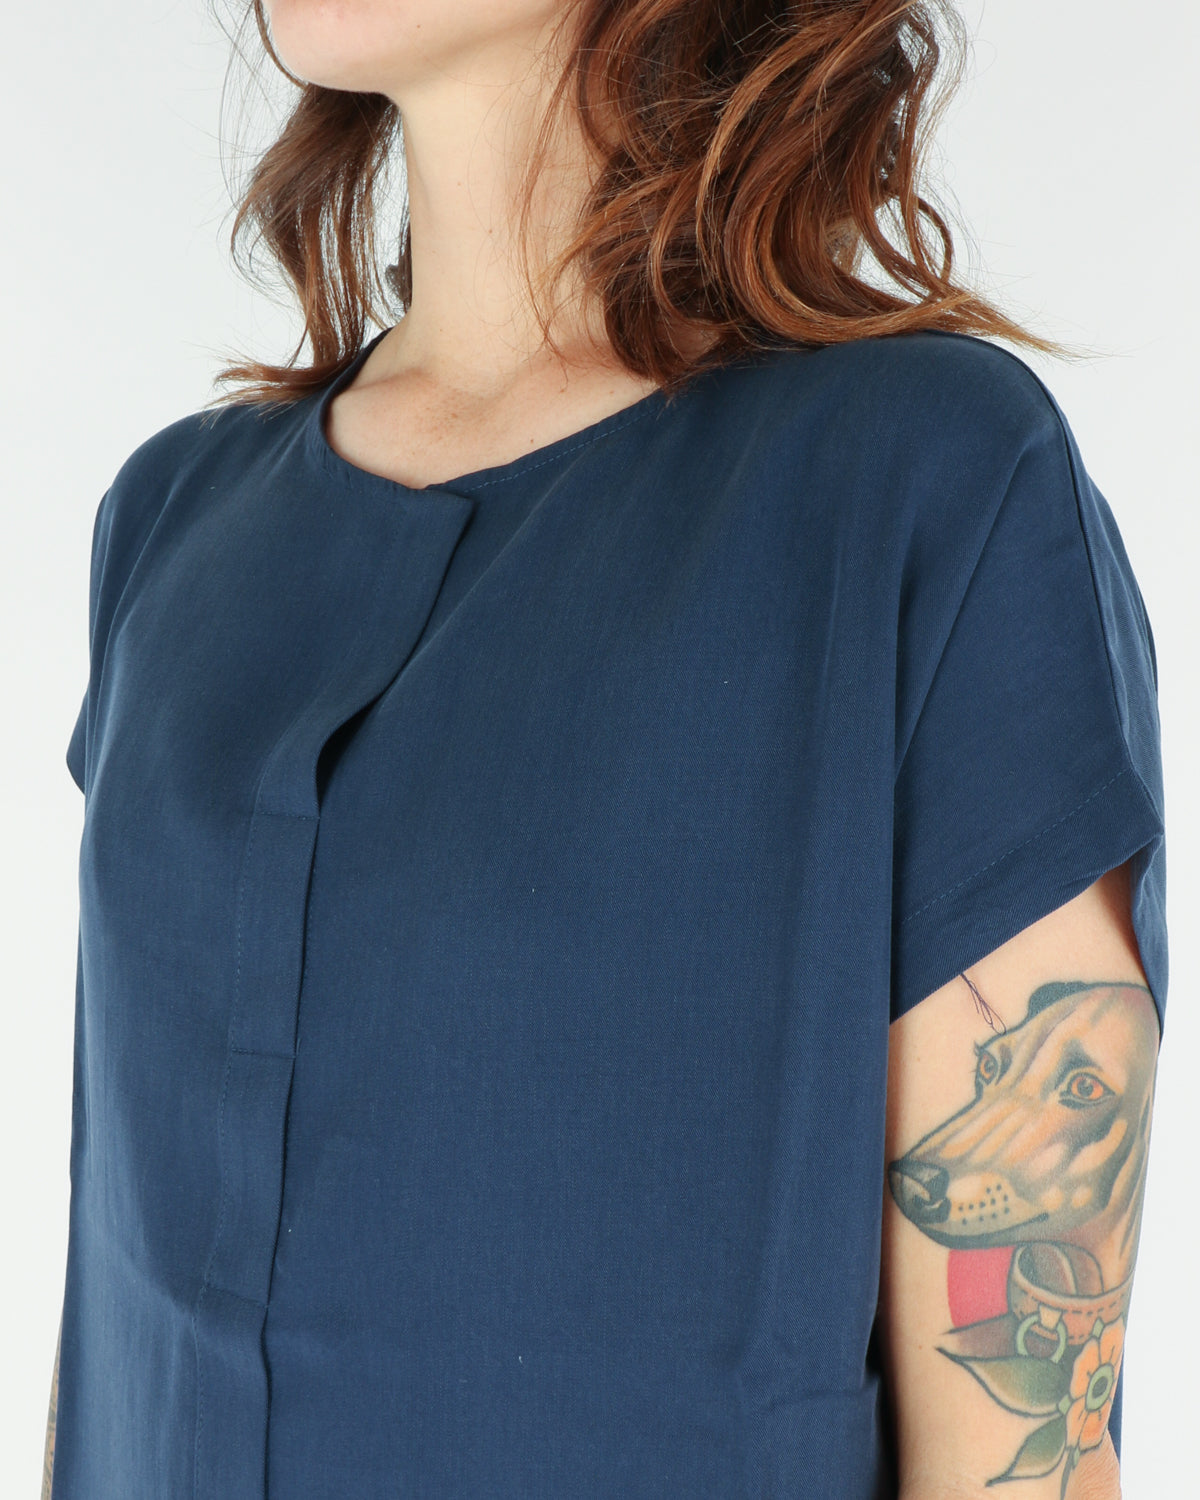 basic apparel_ines dress_navy_3_4